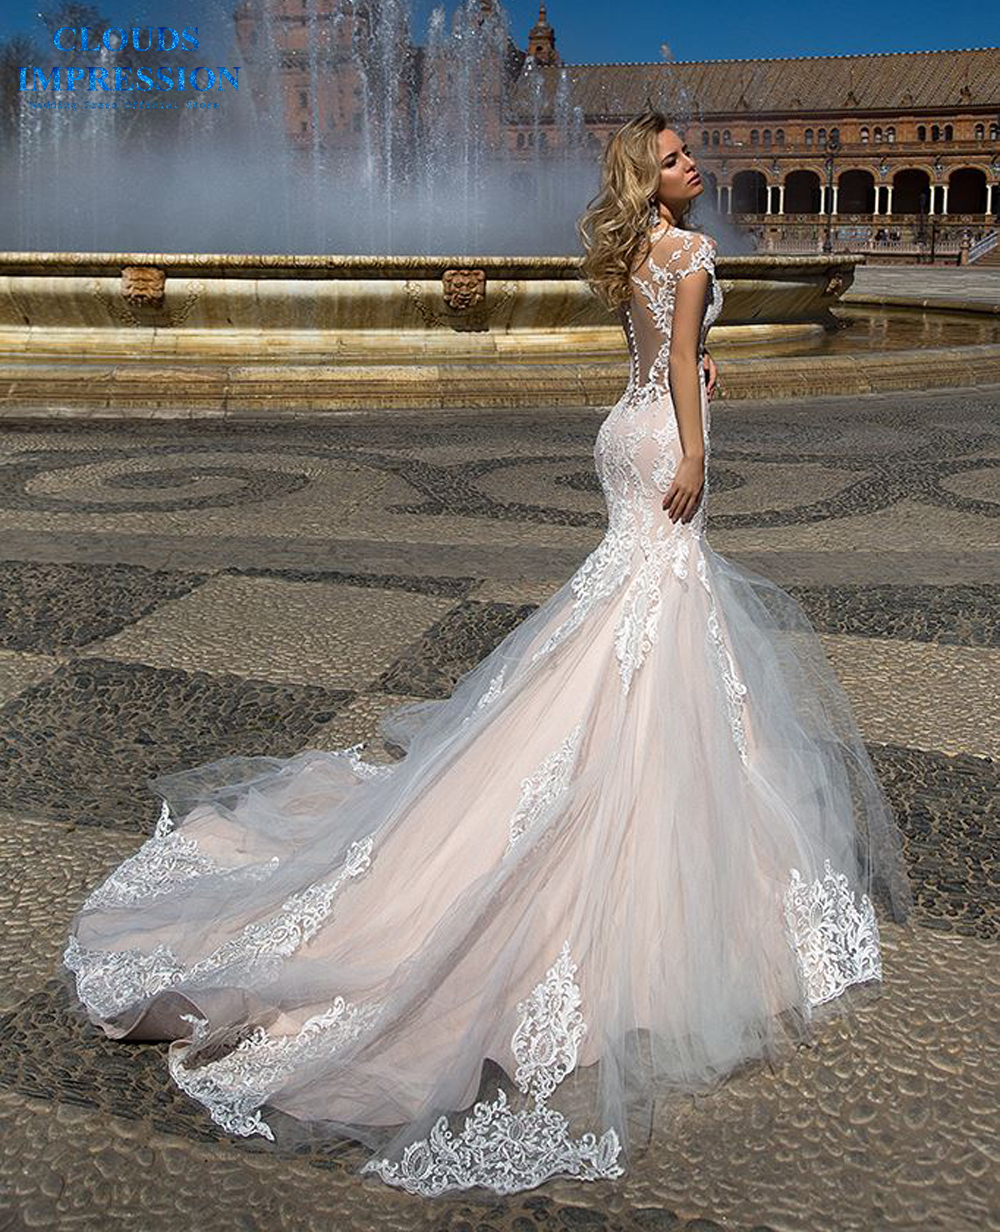 CLOUDS IMPRESSION Sexy Mermaid Wedding Dress 2019 Lace Beading Appliques Bridal Gowns Vestige De Noiva Bride